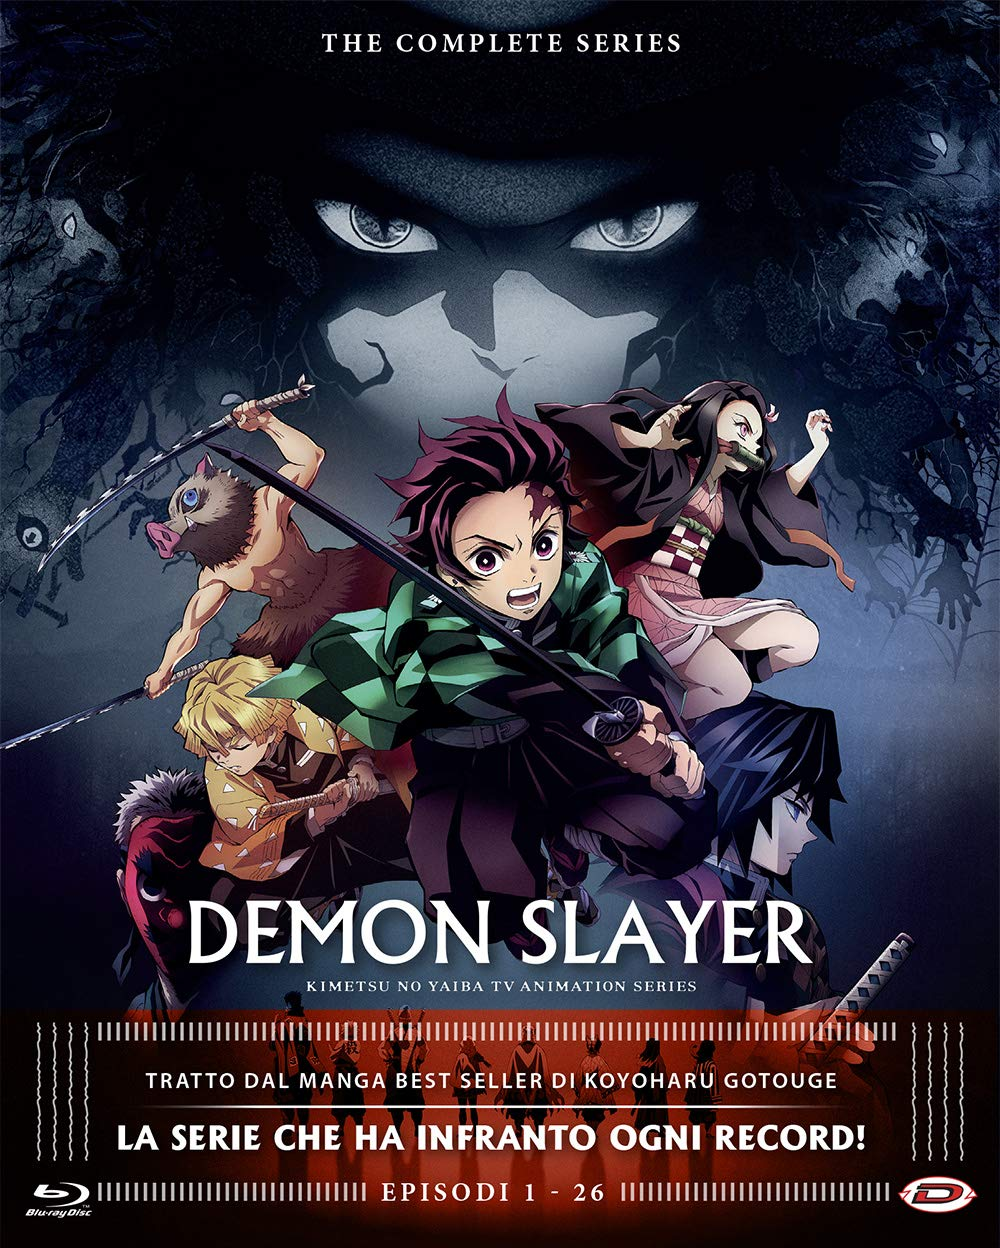 COF.DEMON SLAYER - THE COMPLETE SERIES (EPS 01-26) (4 BLU-RAY)